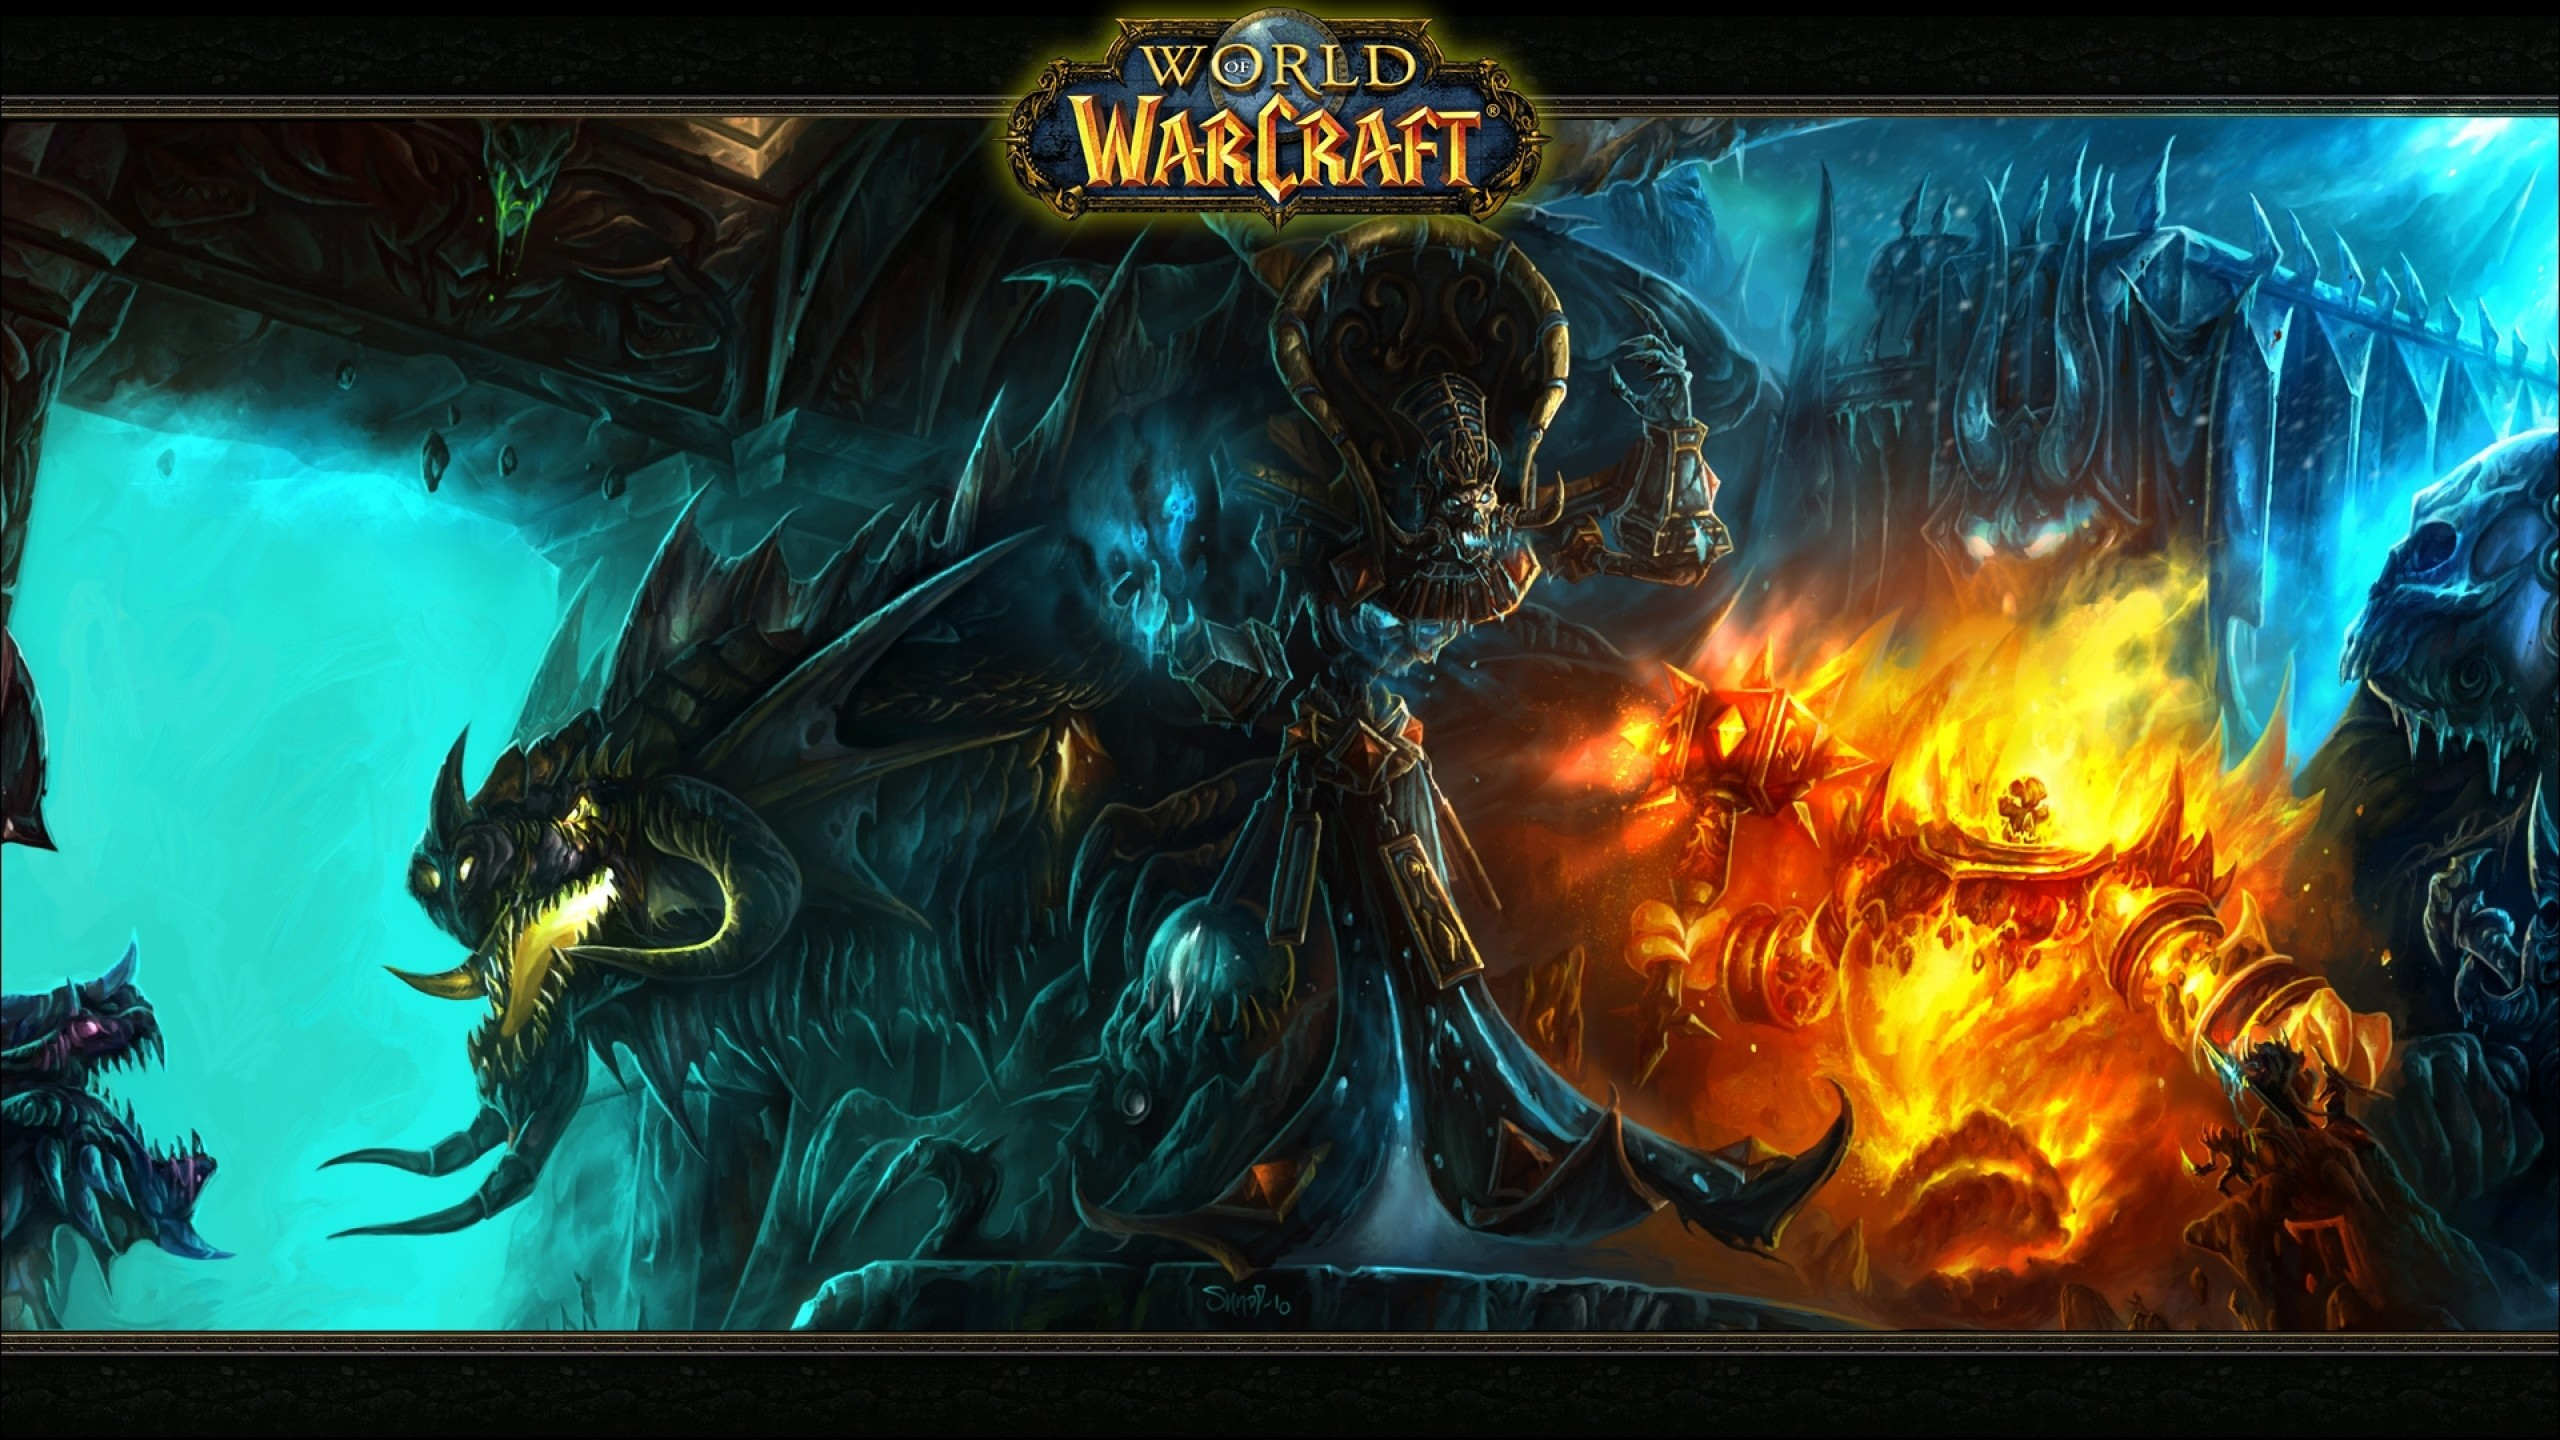 Wallpaper world of warcraft, monsters, characters, game